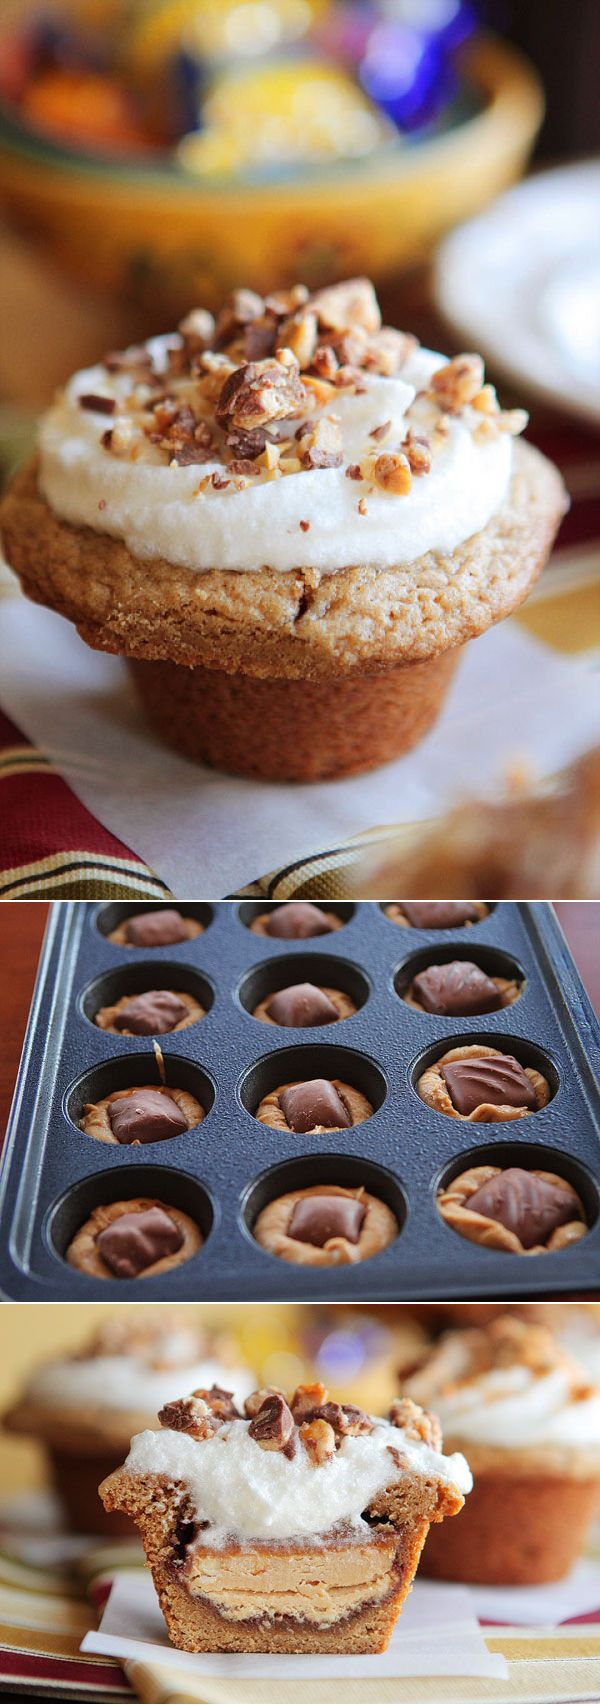 Wrap cookie dough around a mini candy bar and bake it in a muffin tin!: Cookie Cups, Candy Bars, Muffin Tins, Cookie Dough, Wrap Cookie, Bar Stuffed